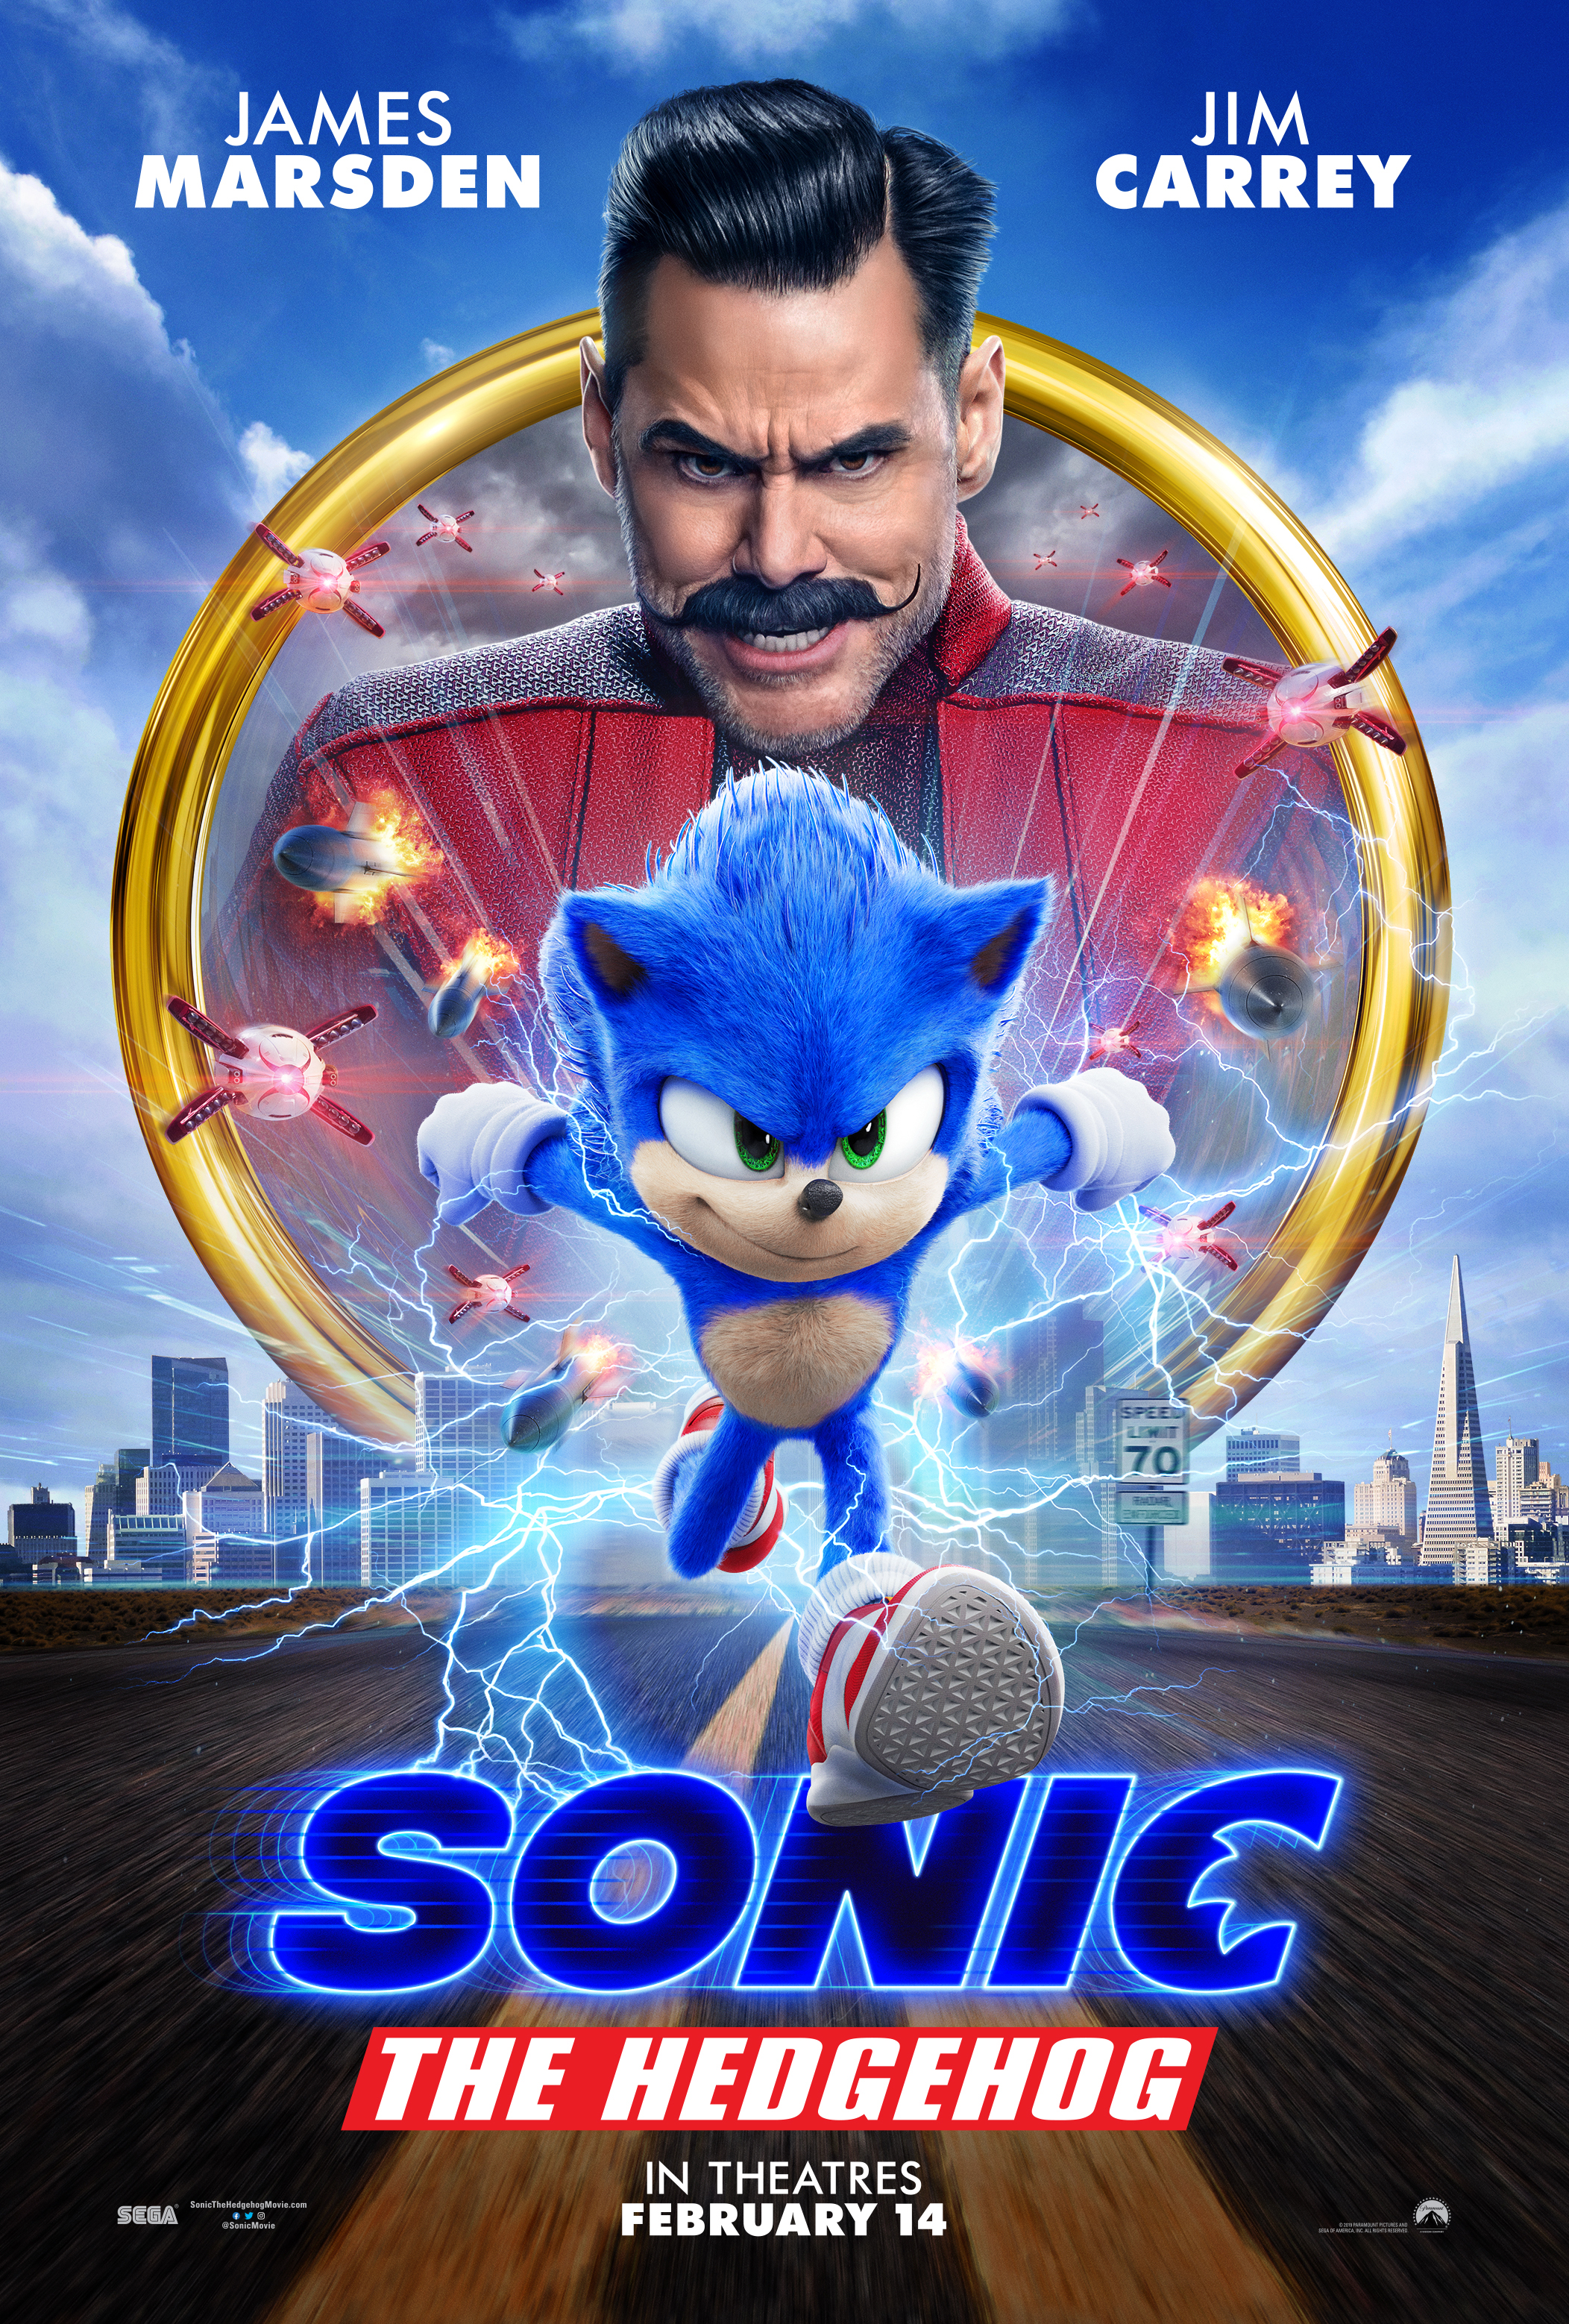 The new Sonic The Hedgehog movie is here! This post shares the best Sonic movie quotes the whole family loves and will repeat over the next few months.